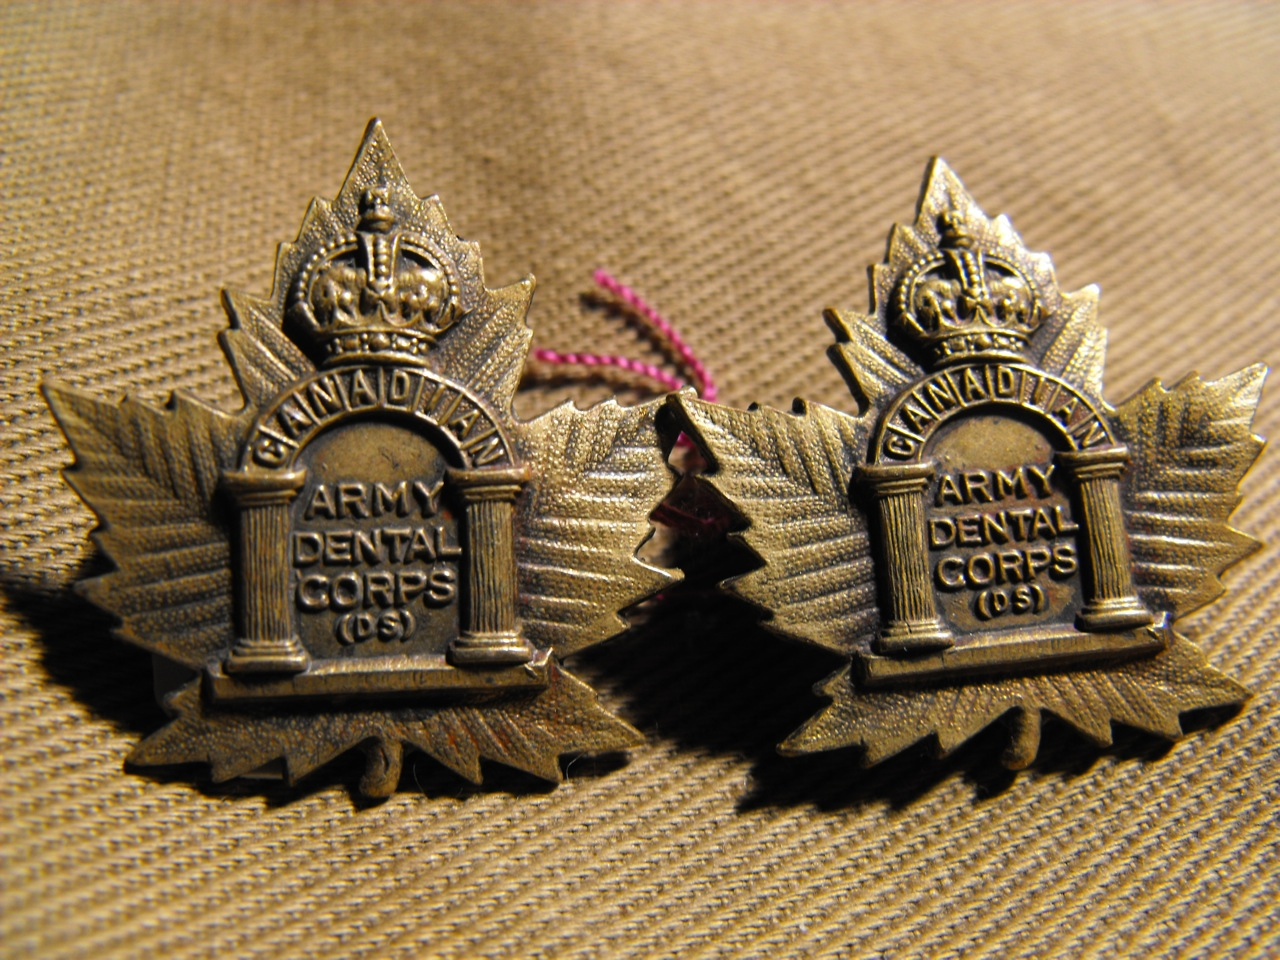 Cdn. Army Dental Corps (D.S.) Collar Dogs